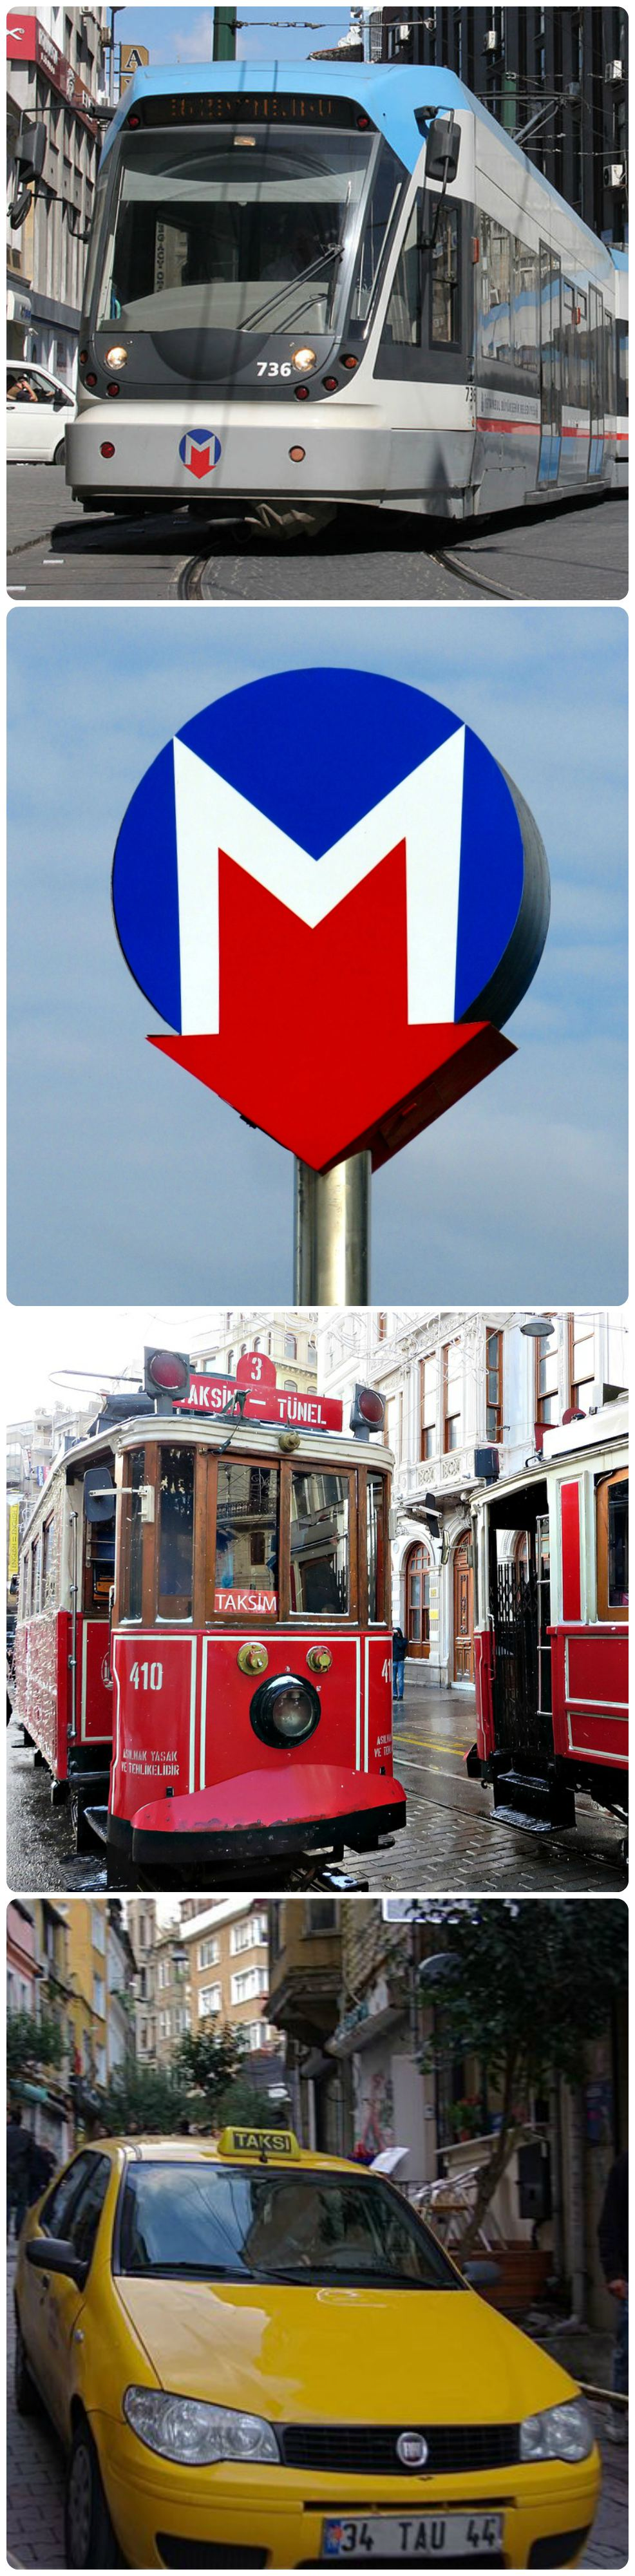 Top to bottom: A tram, a metro station sign, historic tram on Istiklal Avenue, a taxi (taksi).